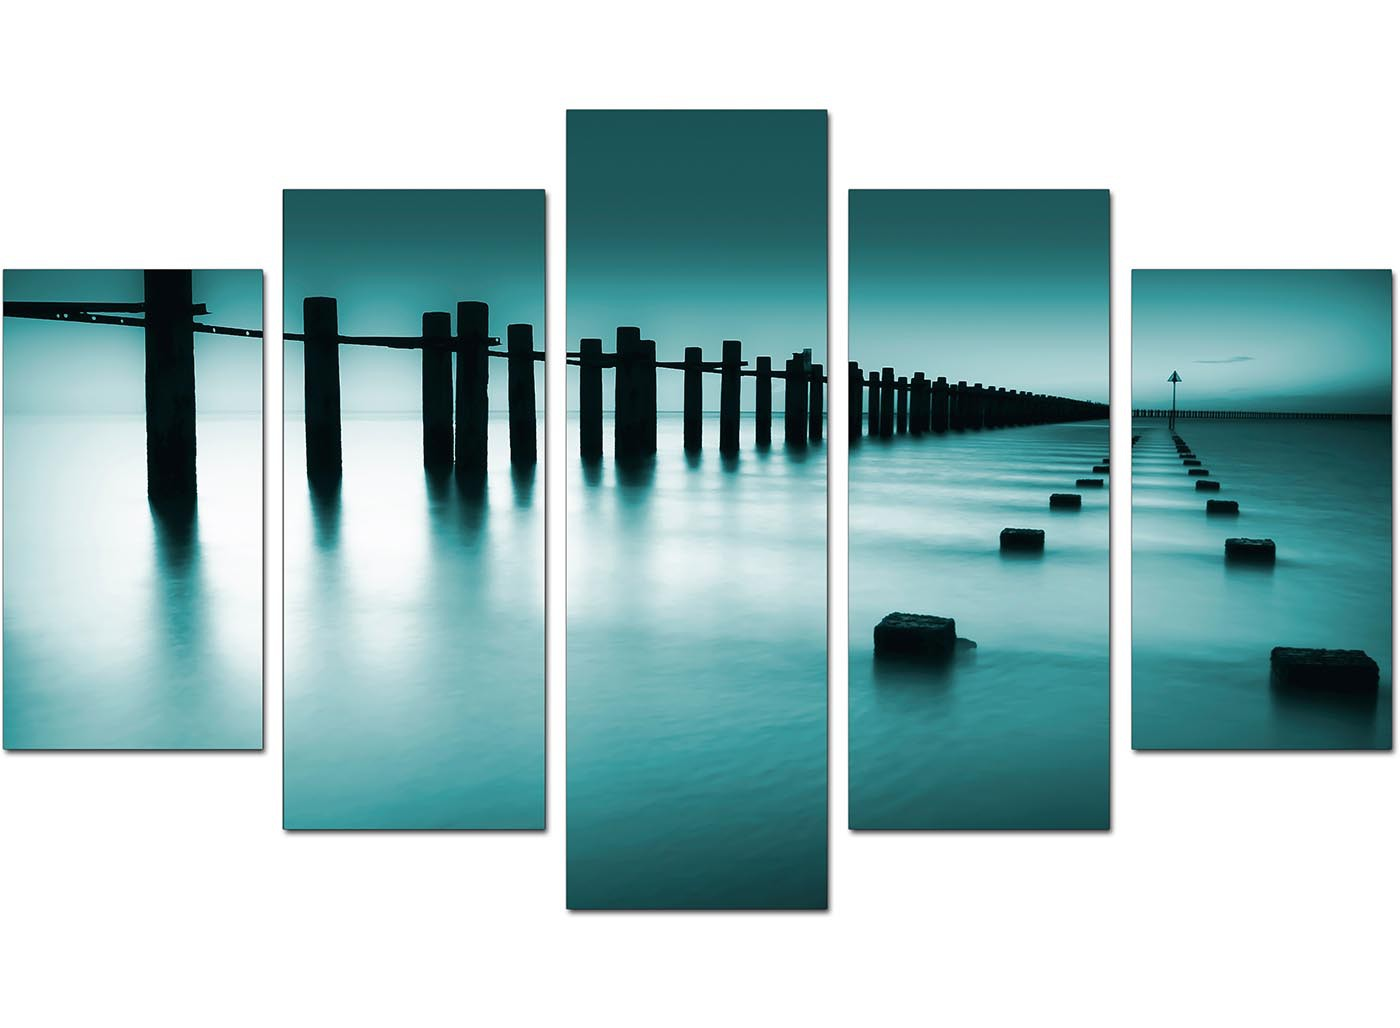 Extra Large Sea Canvas Wall Art Five Panel in Teal : teal canvas art landscape xl 5 part set 50891 from www.wallfillers.co.uk size 1400 x 1028 jpeg 106kB